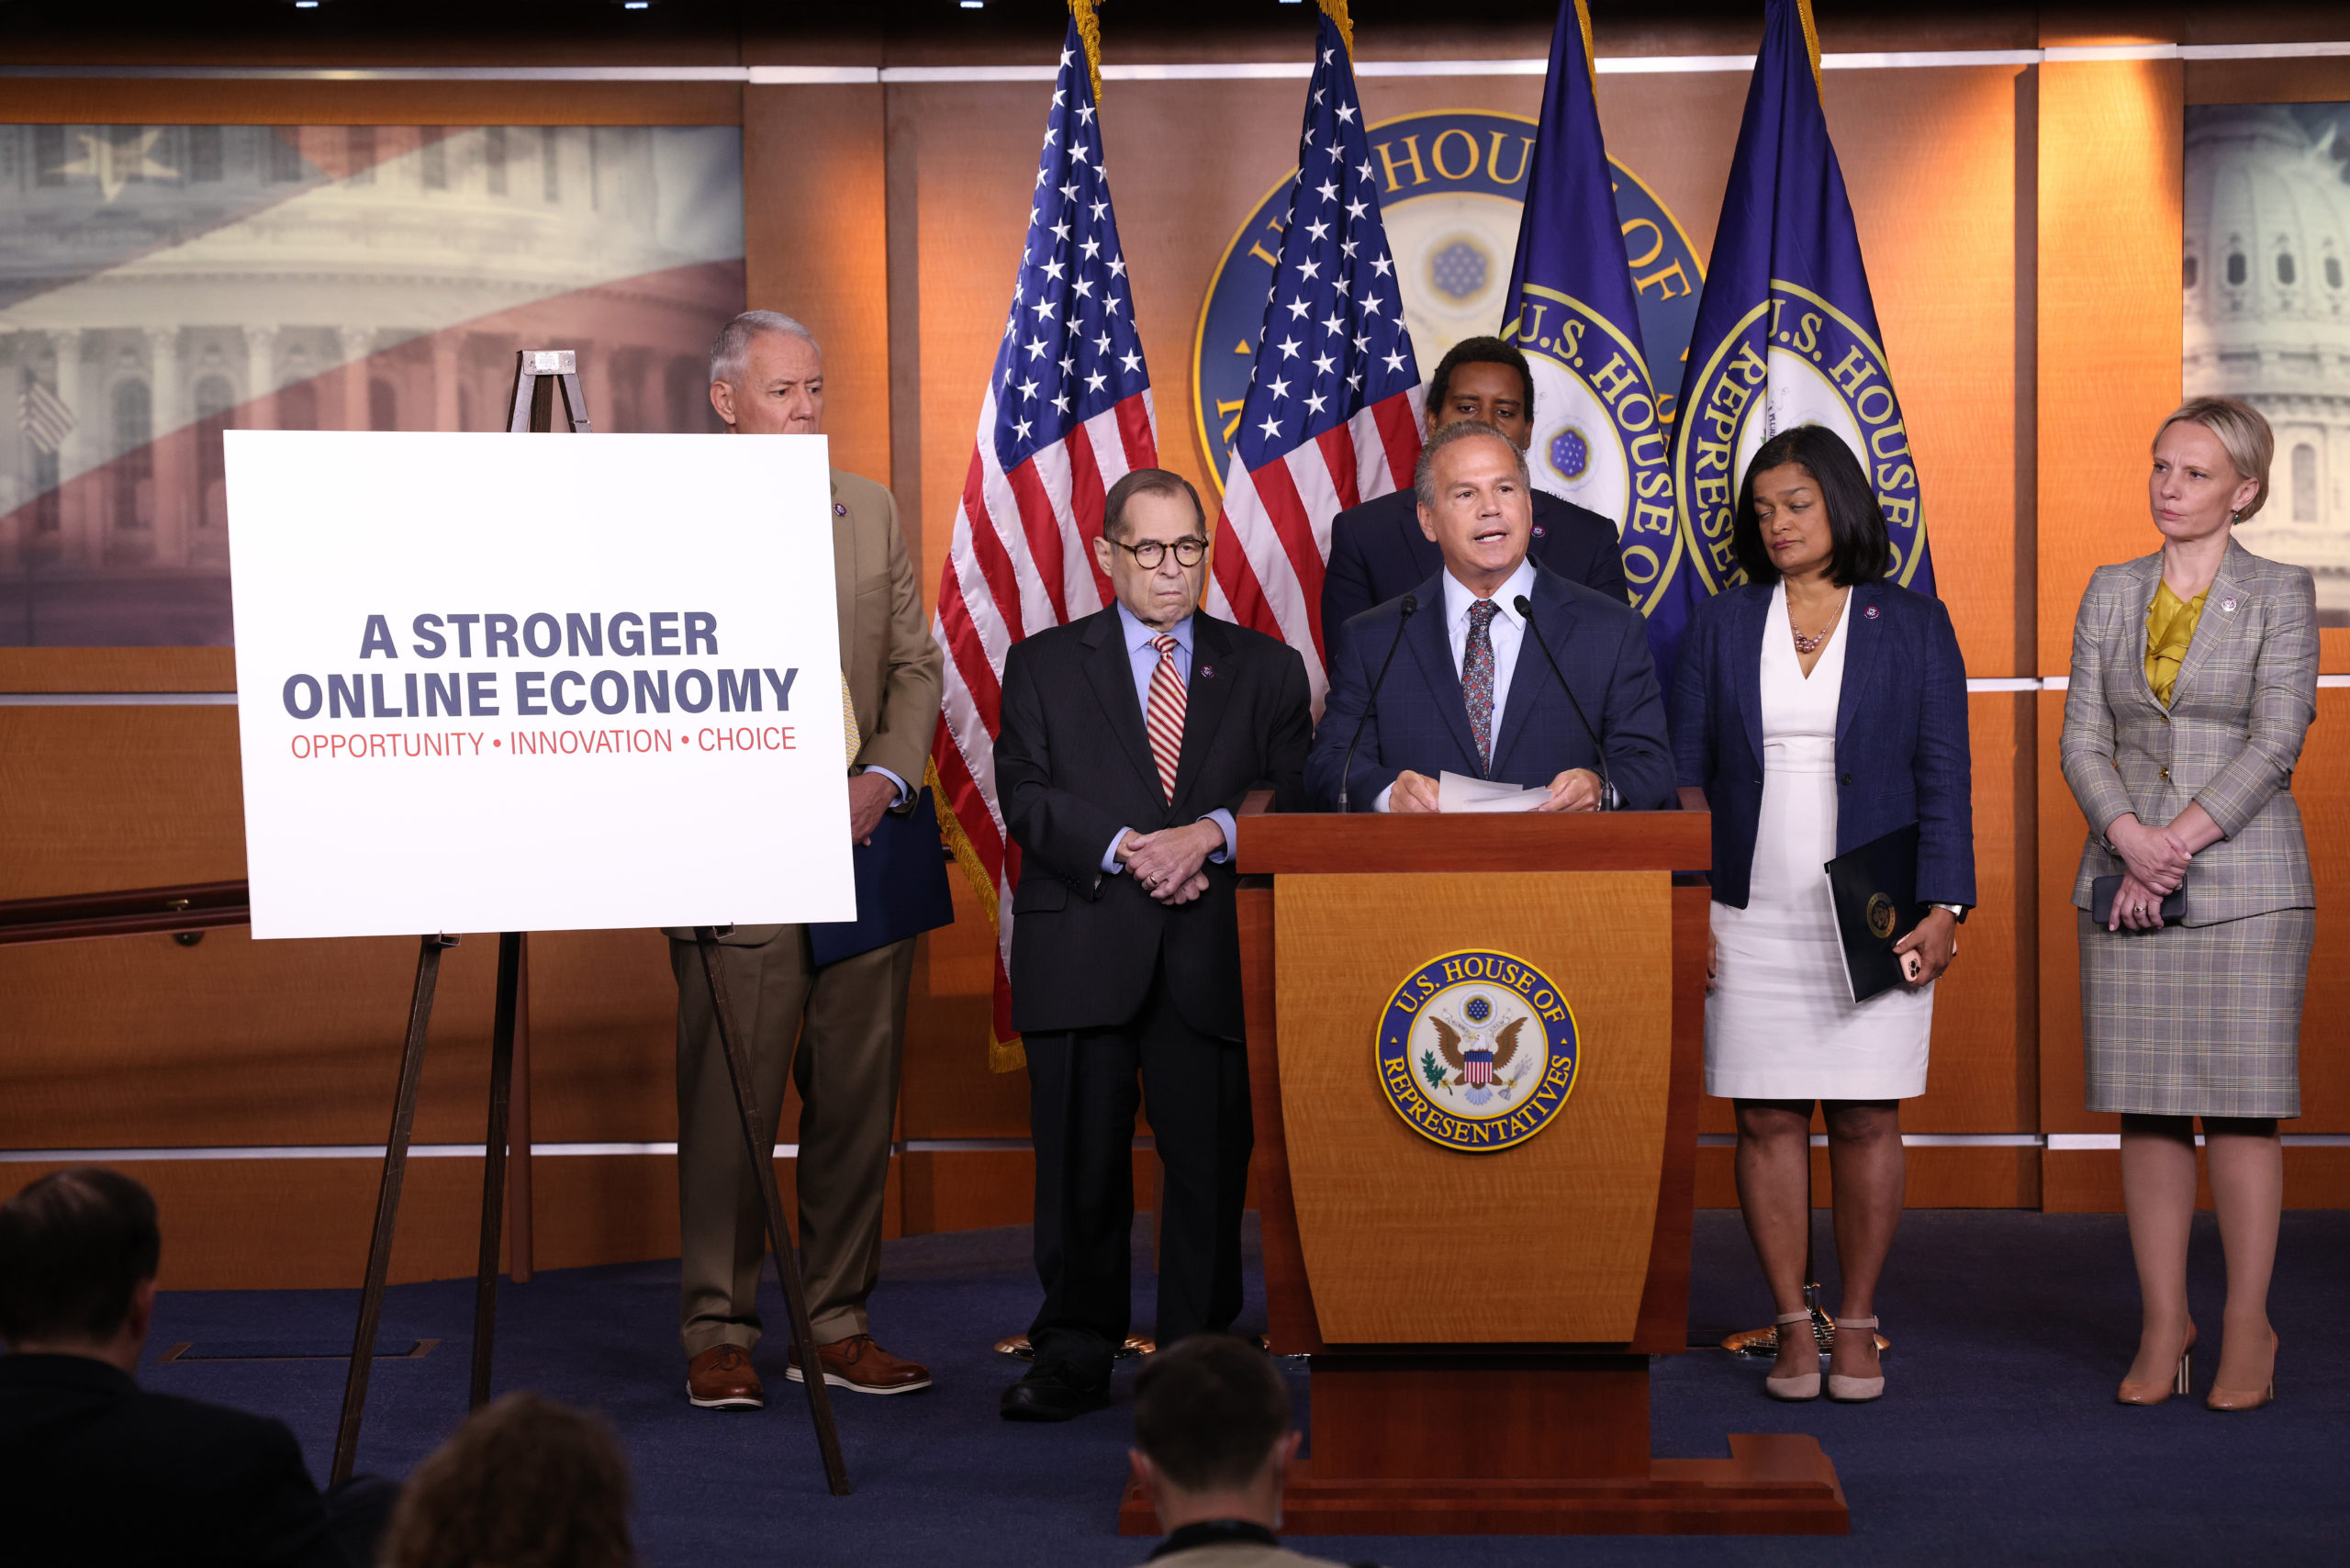 Rep. David Cicilline unveils antitrust legislation during a news conference on June 16. (Win McNamee/Getty Images)